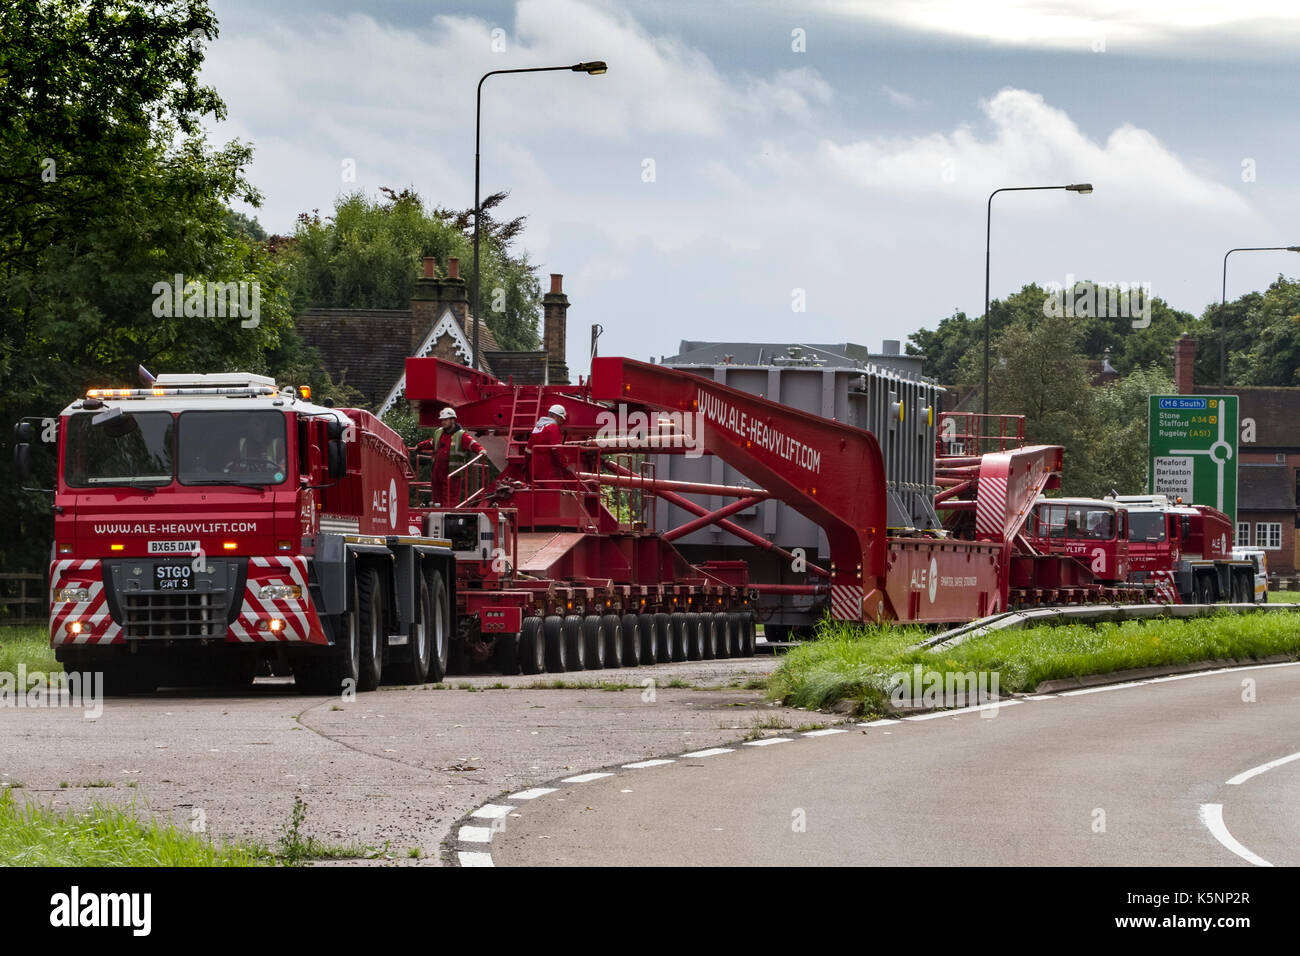 Stone, Staffordshire, UK. 10th September 2017. 10th September, 2017. An enormous abnormal load is moved by hauliers ALE from Stafford to the county border on the A34. It is passing along the A34/A51 junction and consists of a large transformer made by Alstom. Stone, Staffordshire, UK. 10th September 2017. Credit: Richard Holmes/Alamy Live News - Stock Image